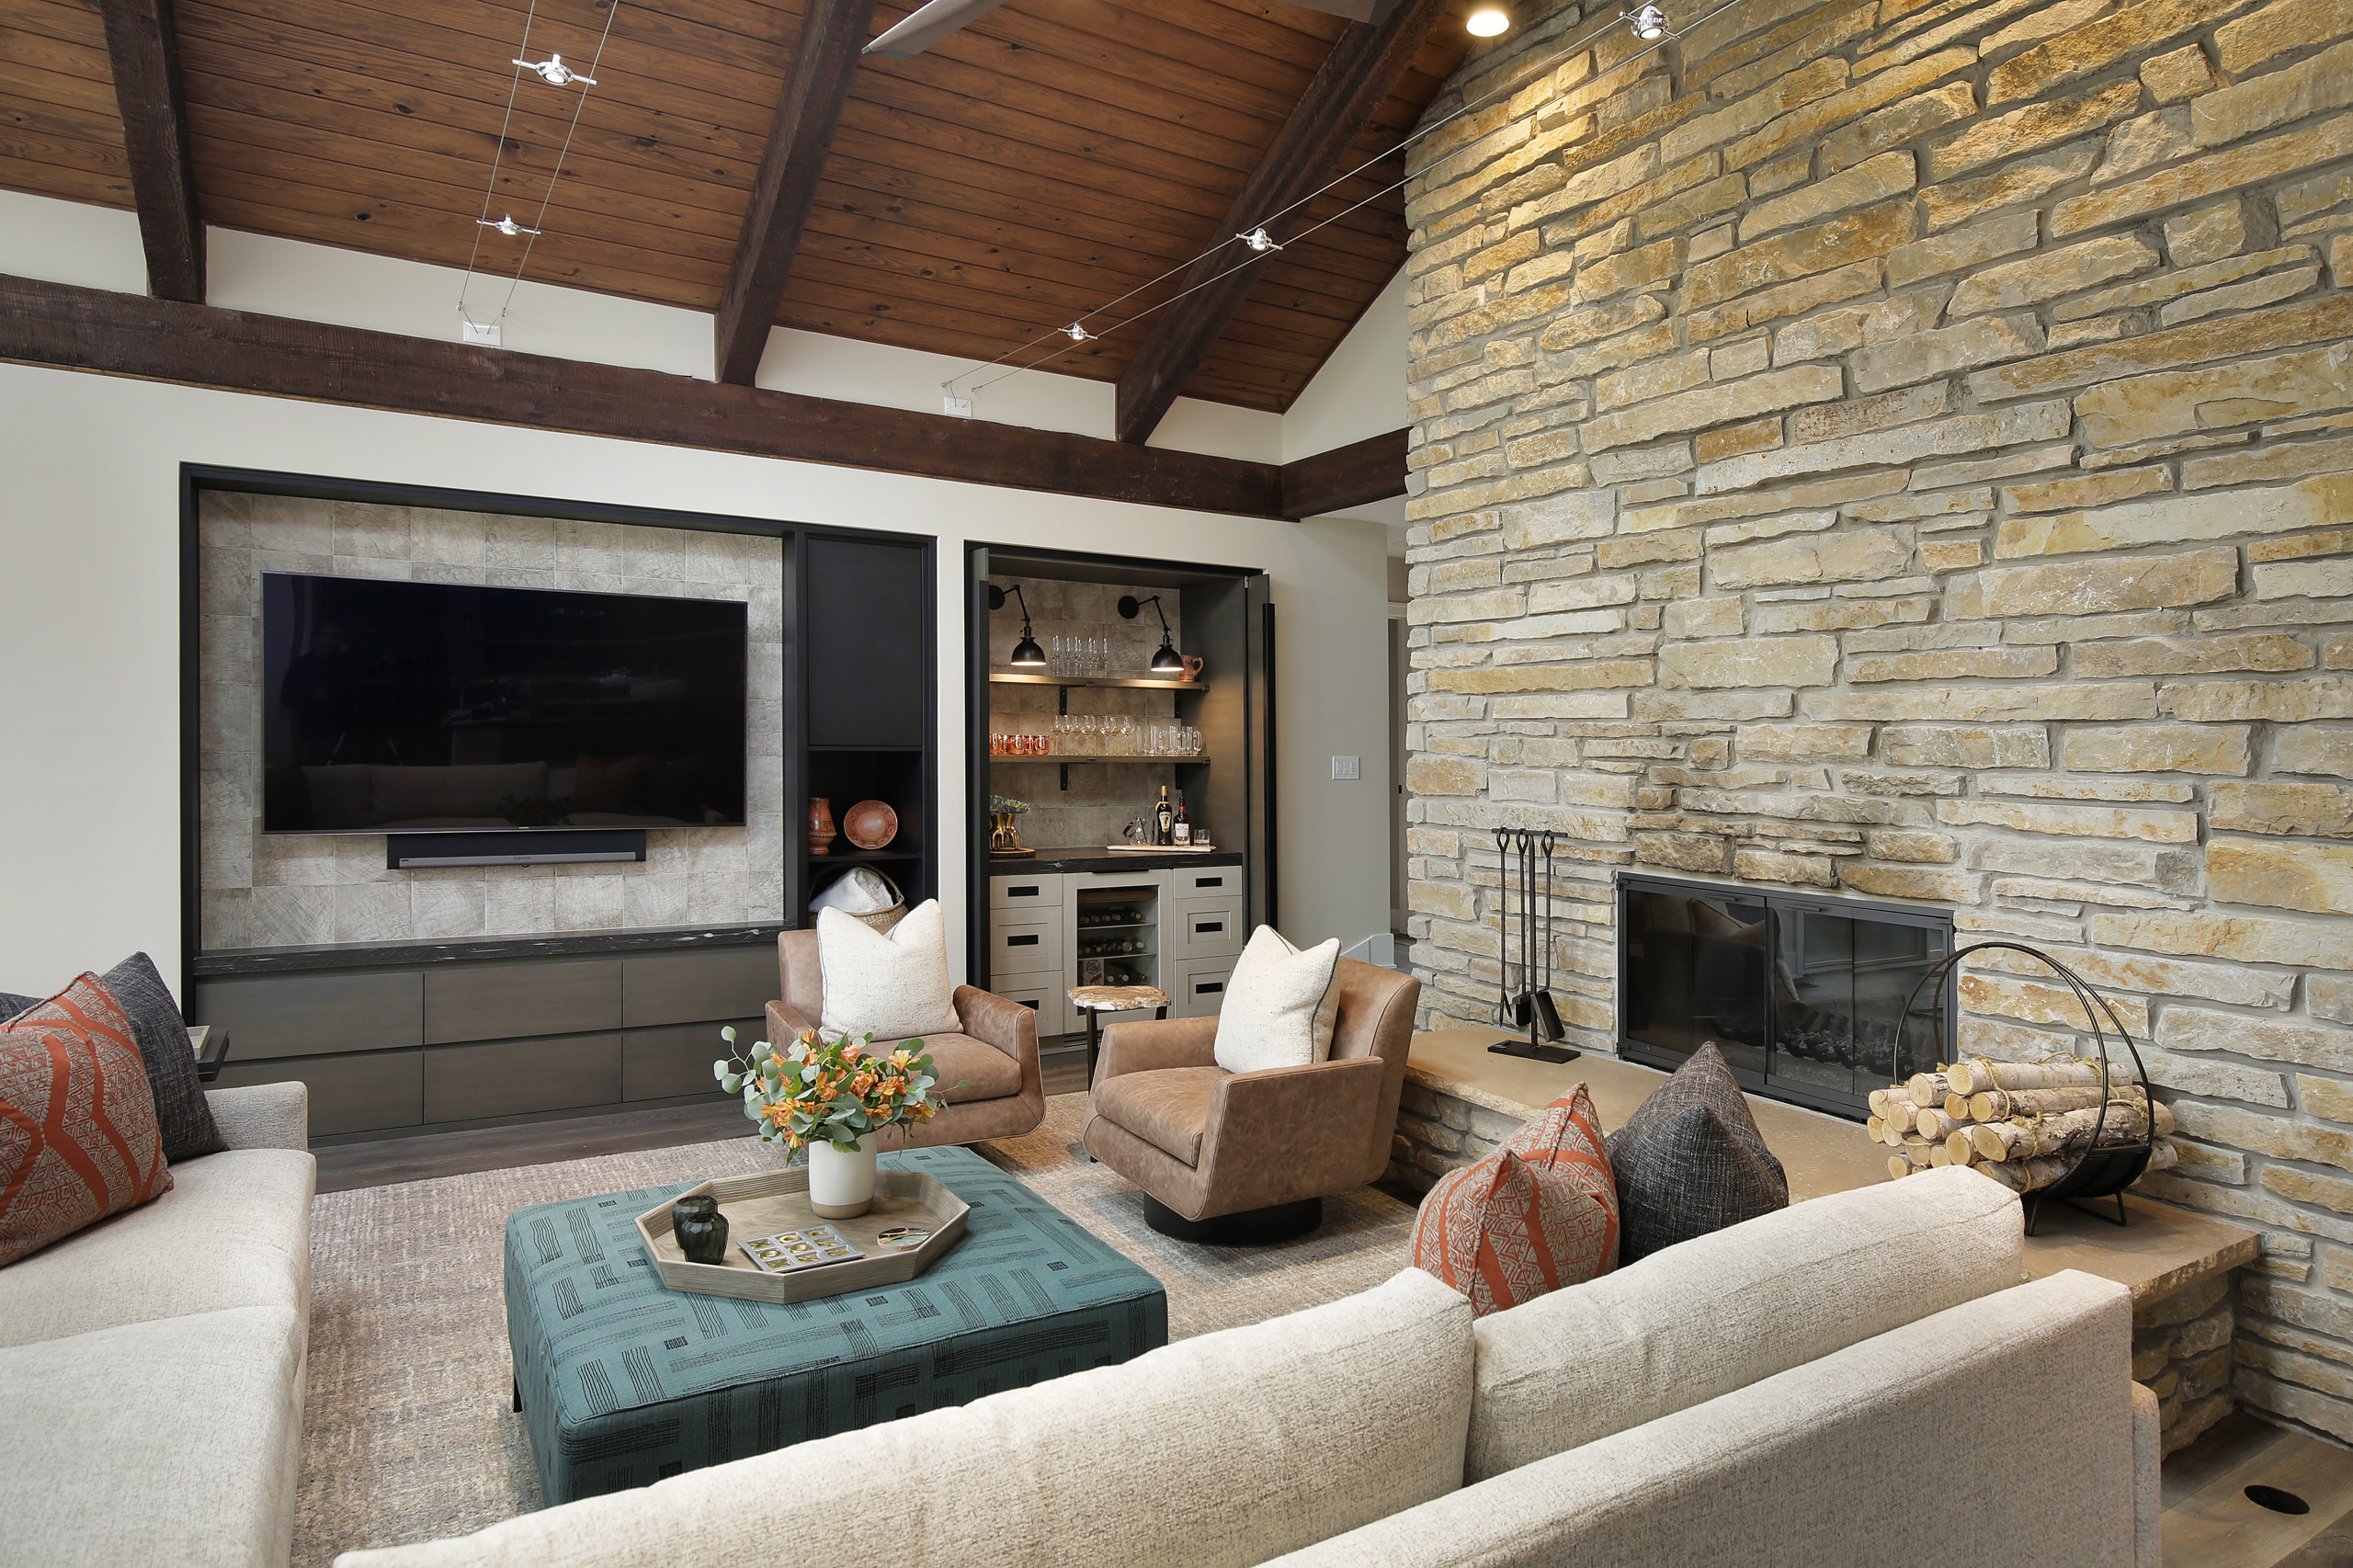 75 Beautiful Rustic Living Room Pictures Ideas December 2020 Houzz